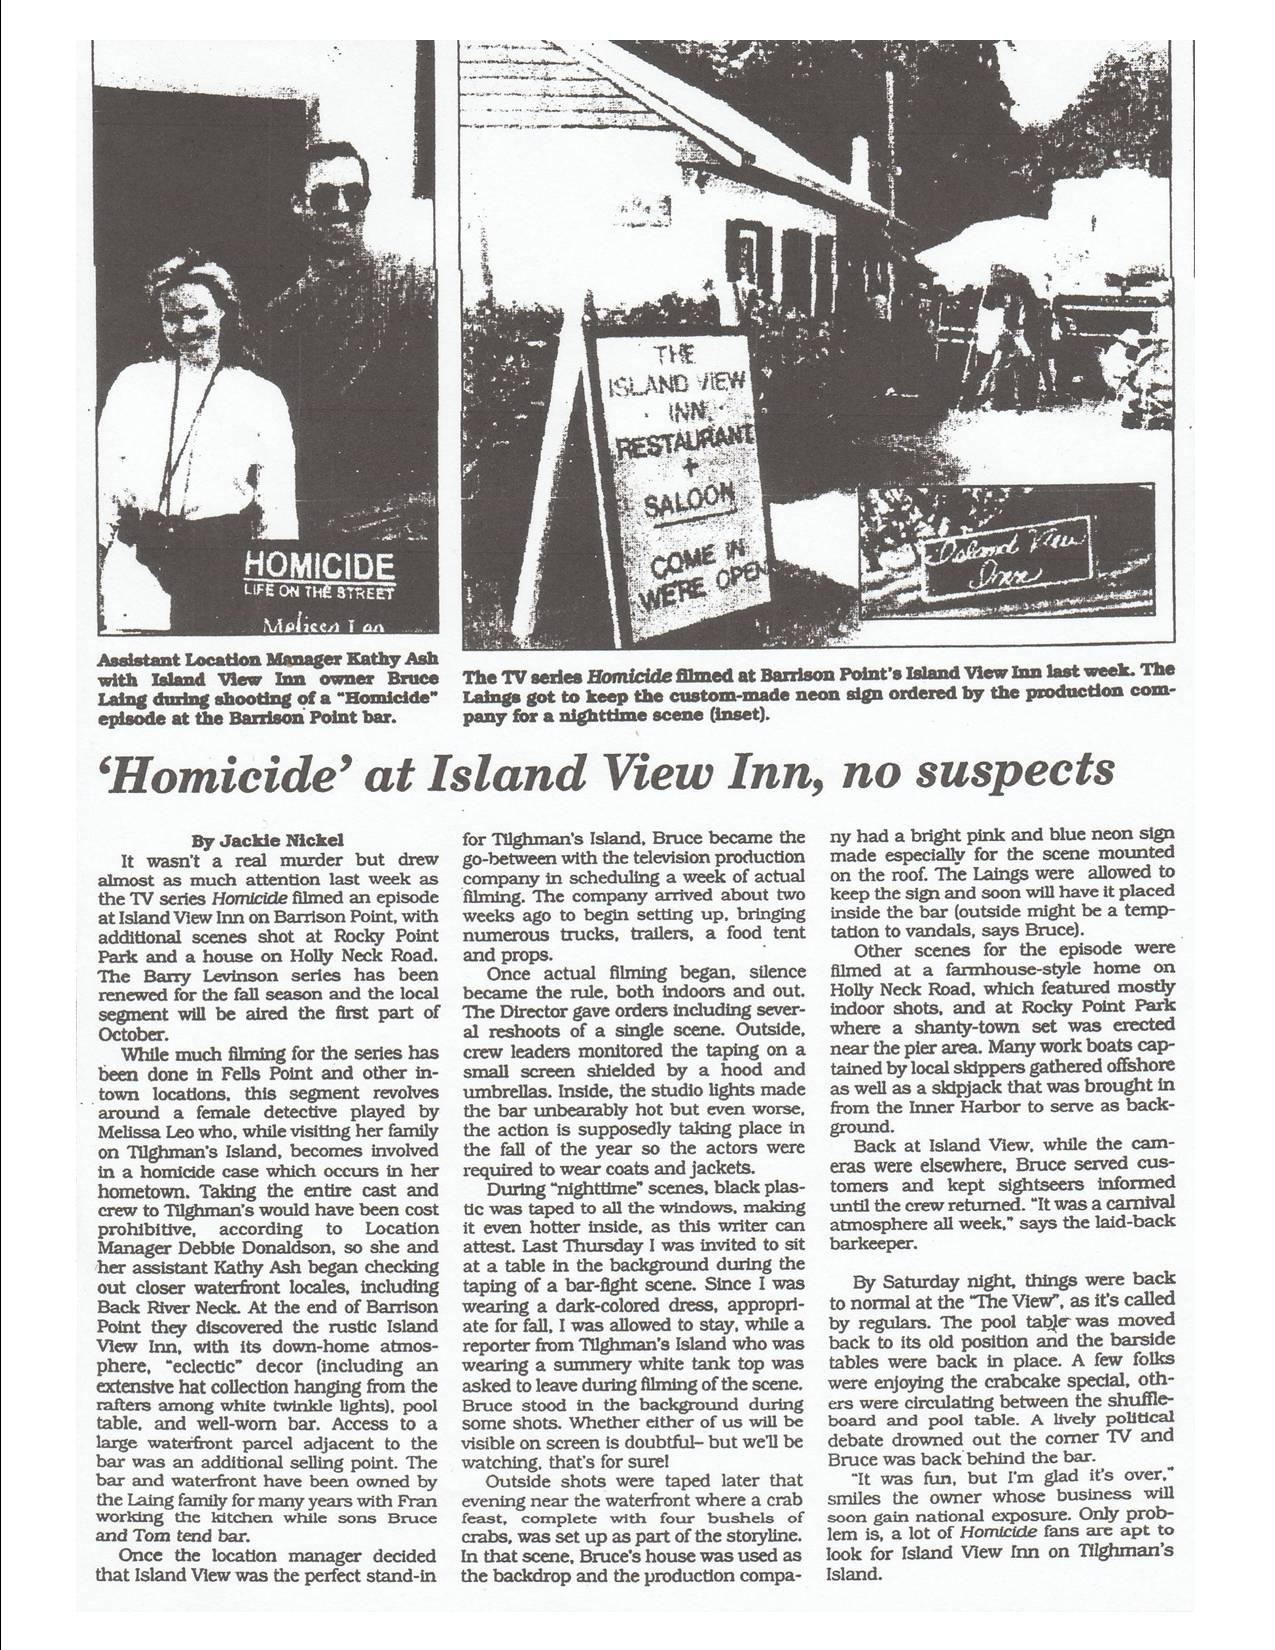 Homicide article